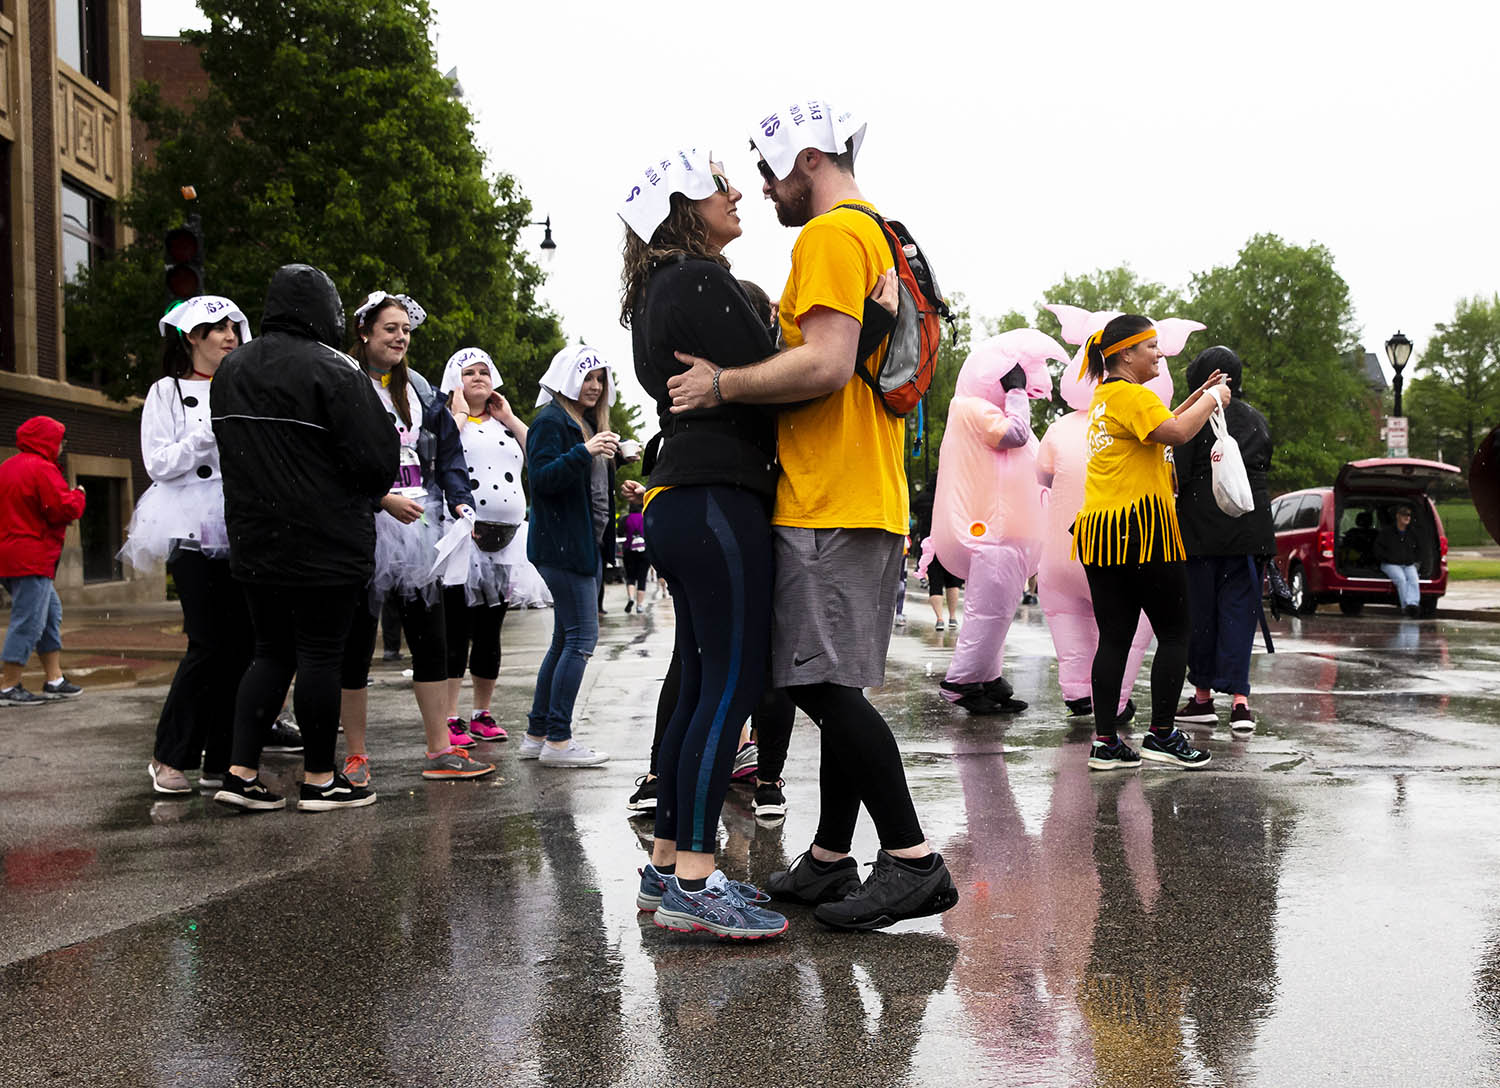 Rachel Stahl, left, and Christian Gillespie, right, dance in the rain to a performance of Elvis Himselvis along Capitol Avenue during the Fat Ass 5K & Street Party for Charity along the streets of downtown, Saturday, May 11, 2019, in Springfield, Ill. Stahl is originally from Springfield, but the couple traveled from Oklahoma to attend the race which was her sixth. The Fat Ass 5K is a race throughout downtown that includes stops for beer, corn dogs, donuts and ice cream and has donated over $1.3 million dollars to charity since 2008. According to Paul Schafer, one of the several race organizers, this year's event raised around $150,000 dollars that will be divided up between 36 charities. [Justin L. Fowler/The State